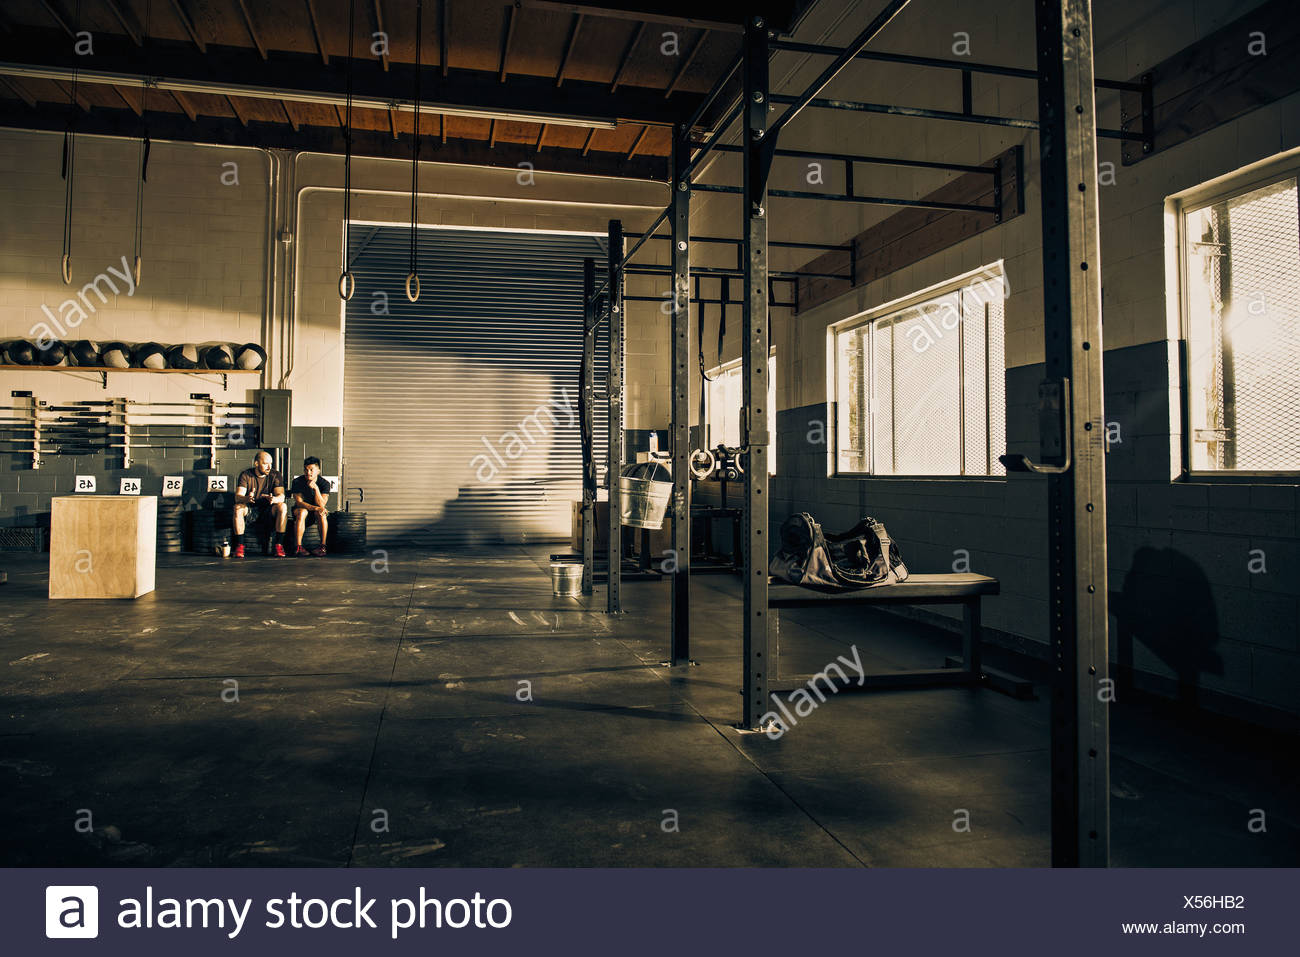 Two men taking a break from training in gymnasium - Stock Image